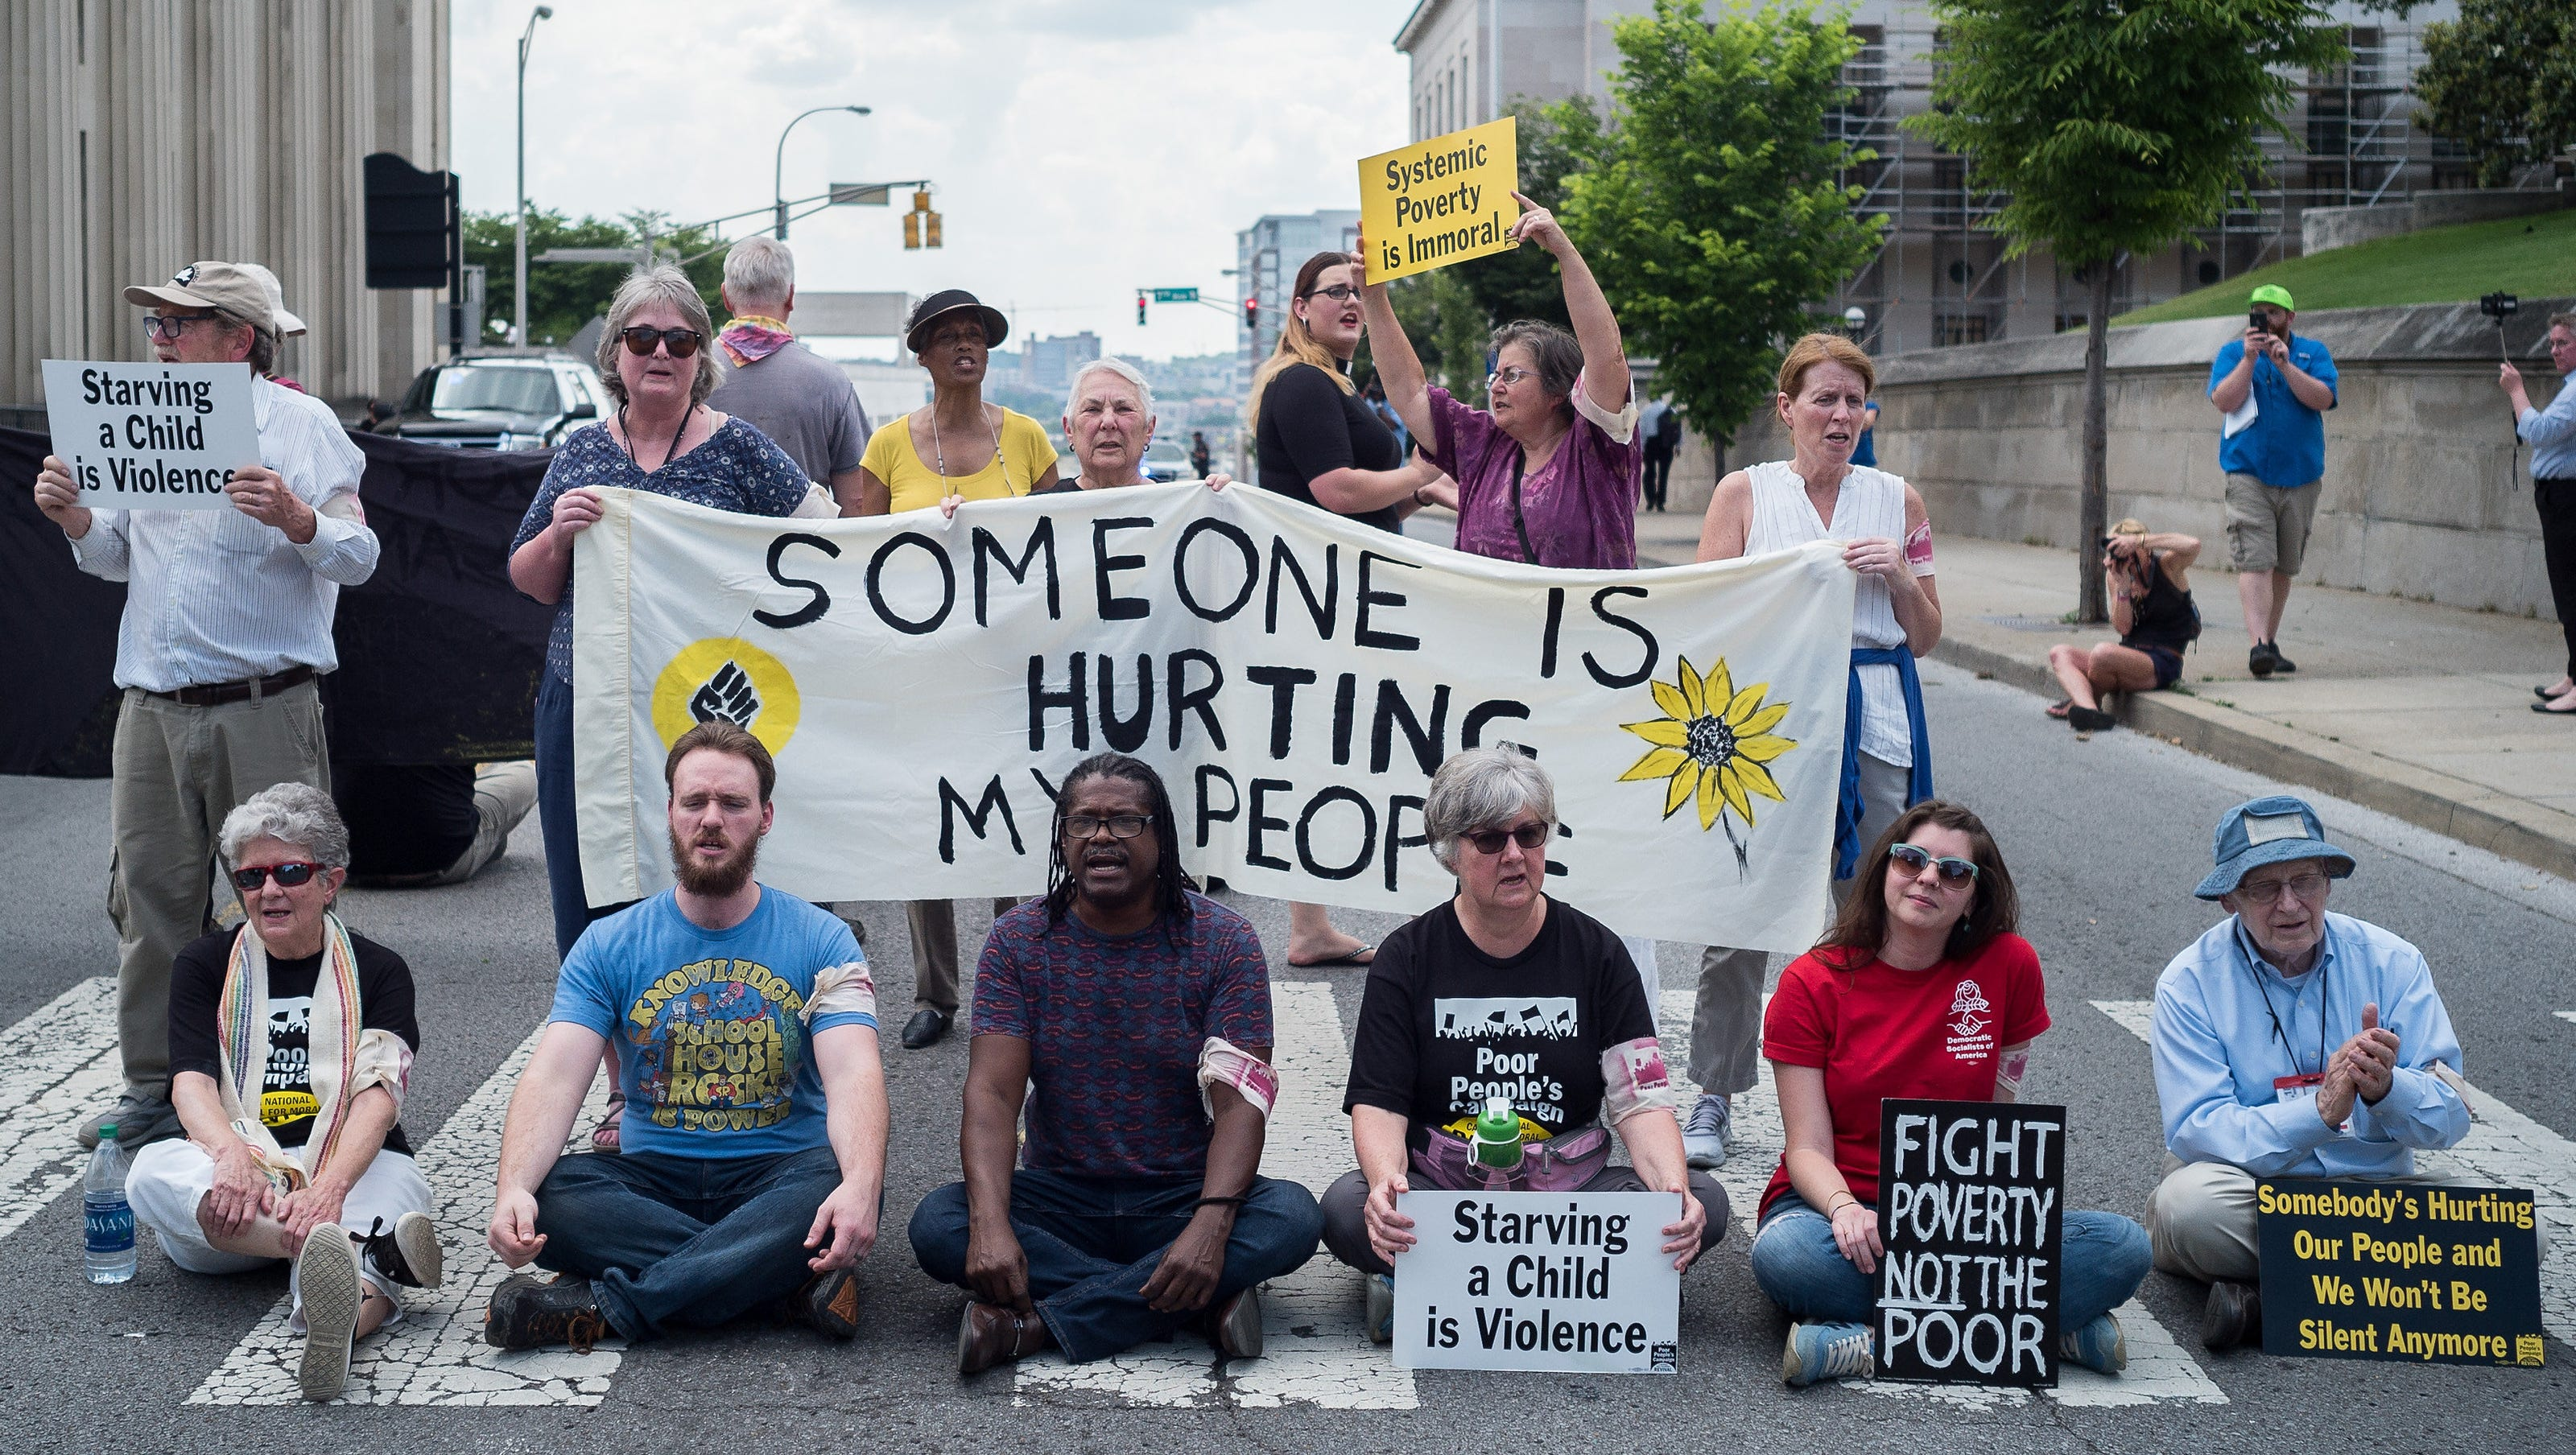 Poor People's Campaign launches days of protests around US